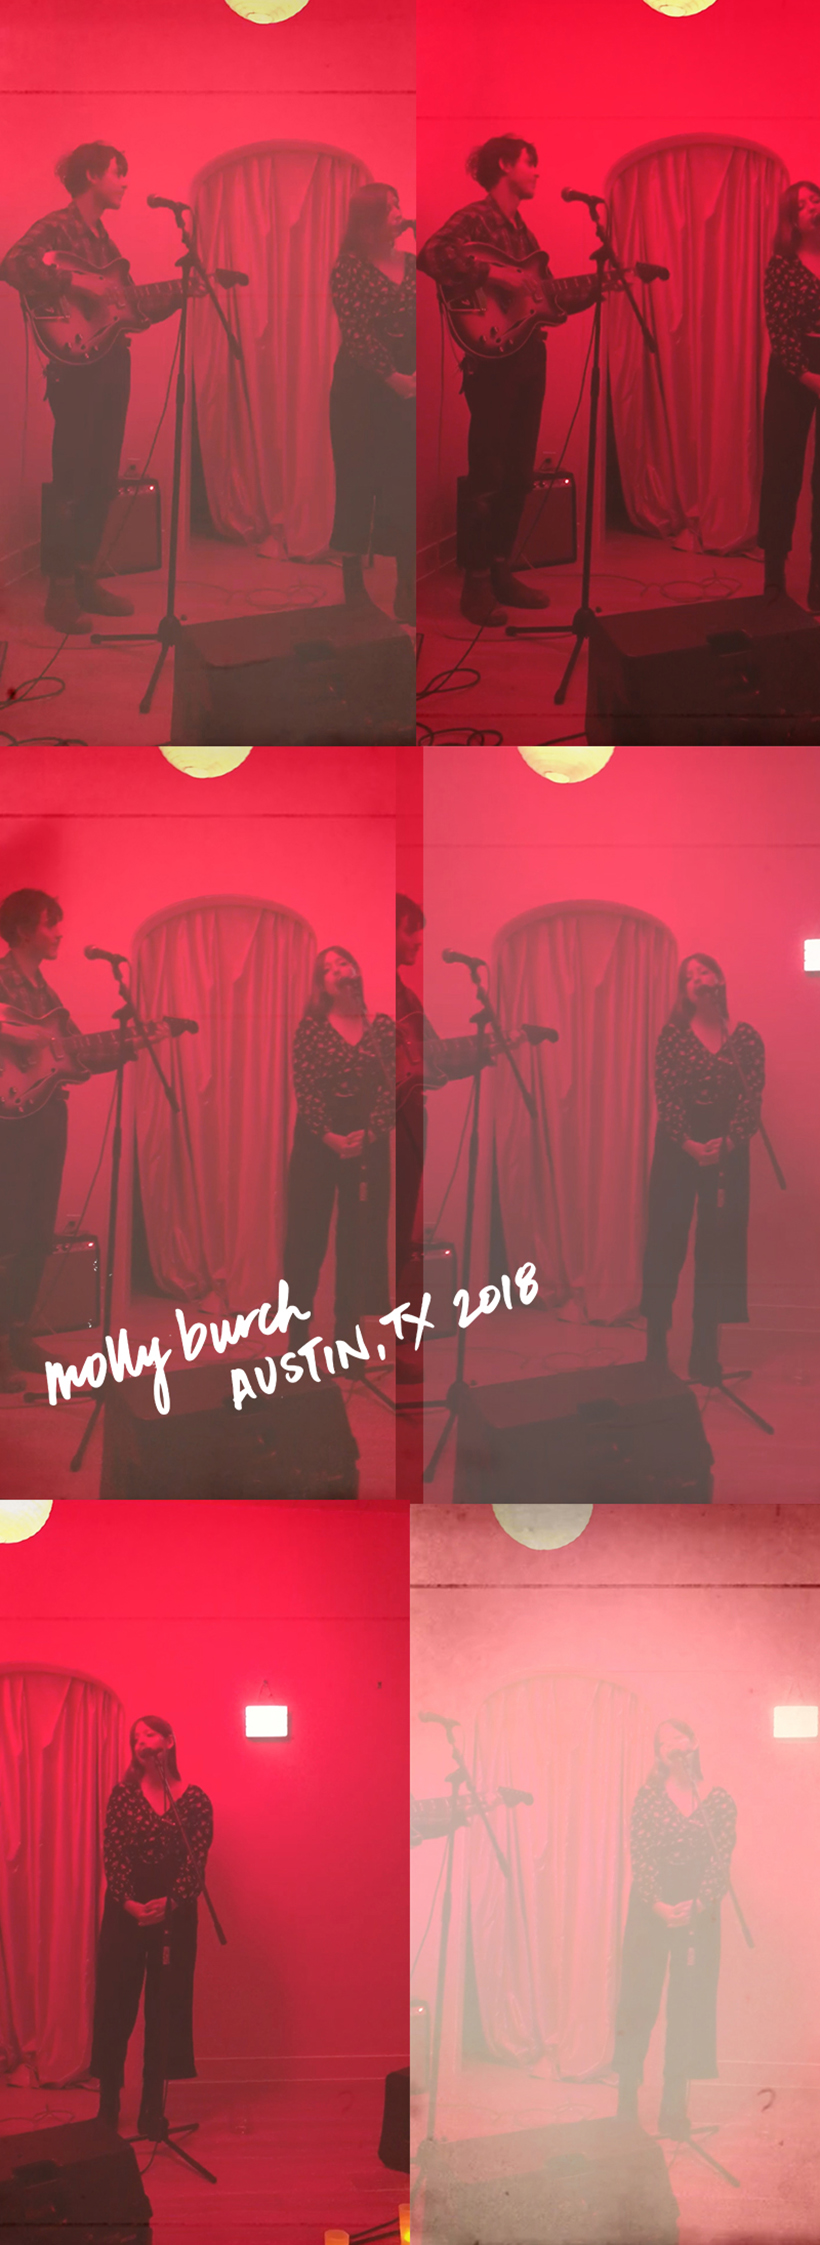 Molly Burch secret show in Austin, Texas